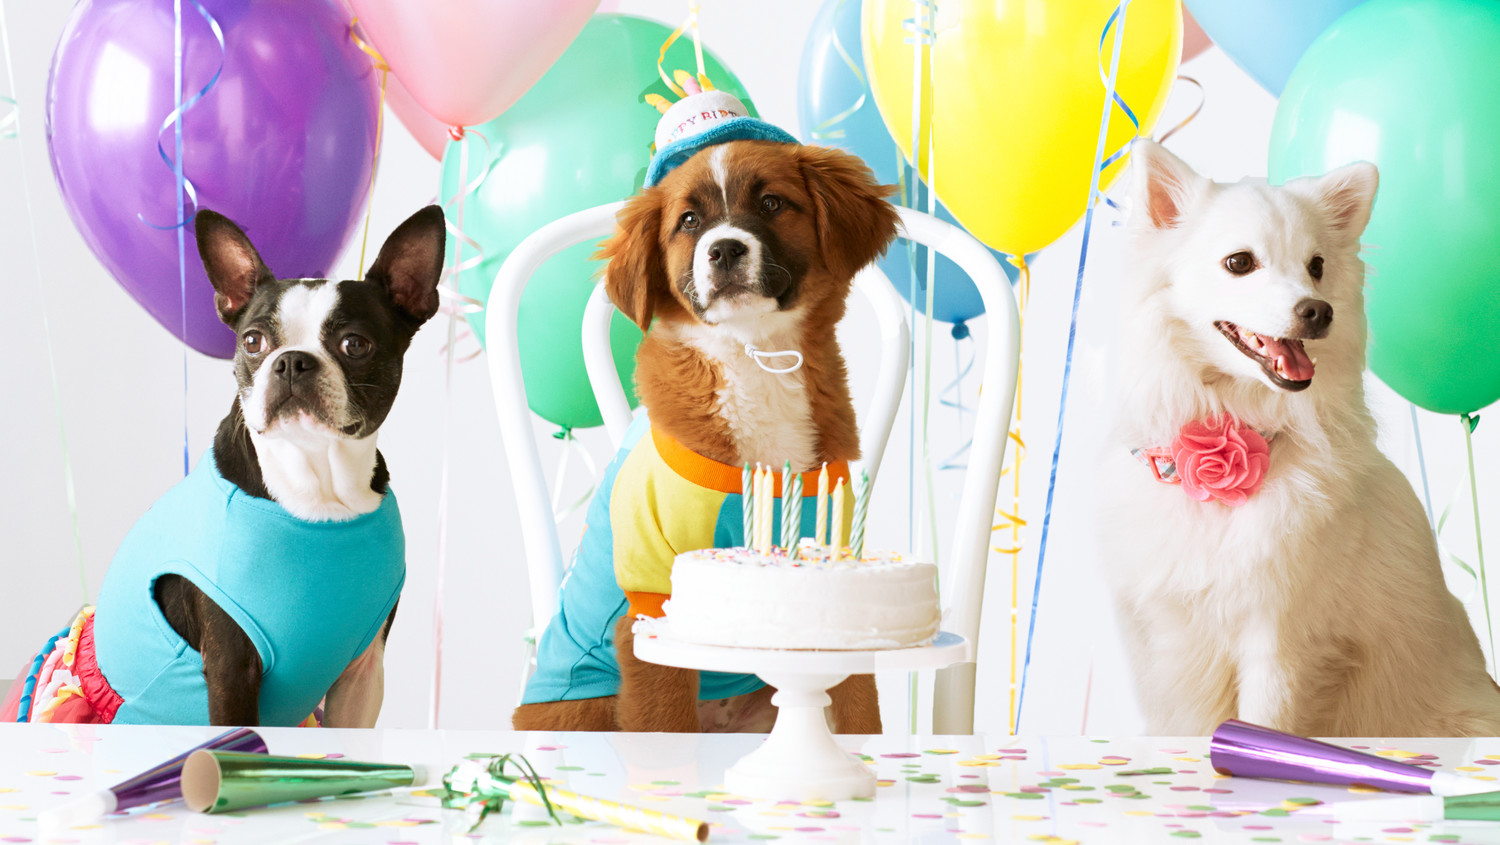 Pampered pooches: the rise of the Instagram worthy dog birthday parties